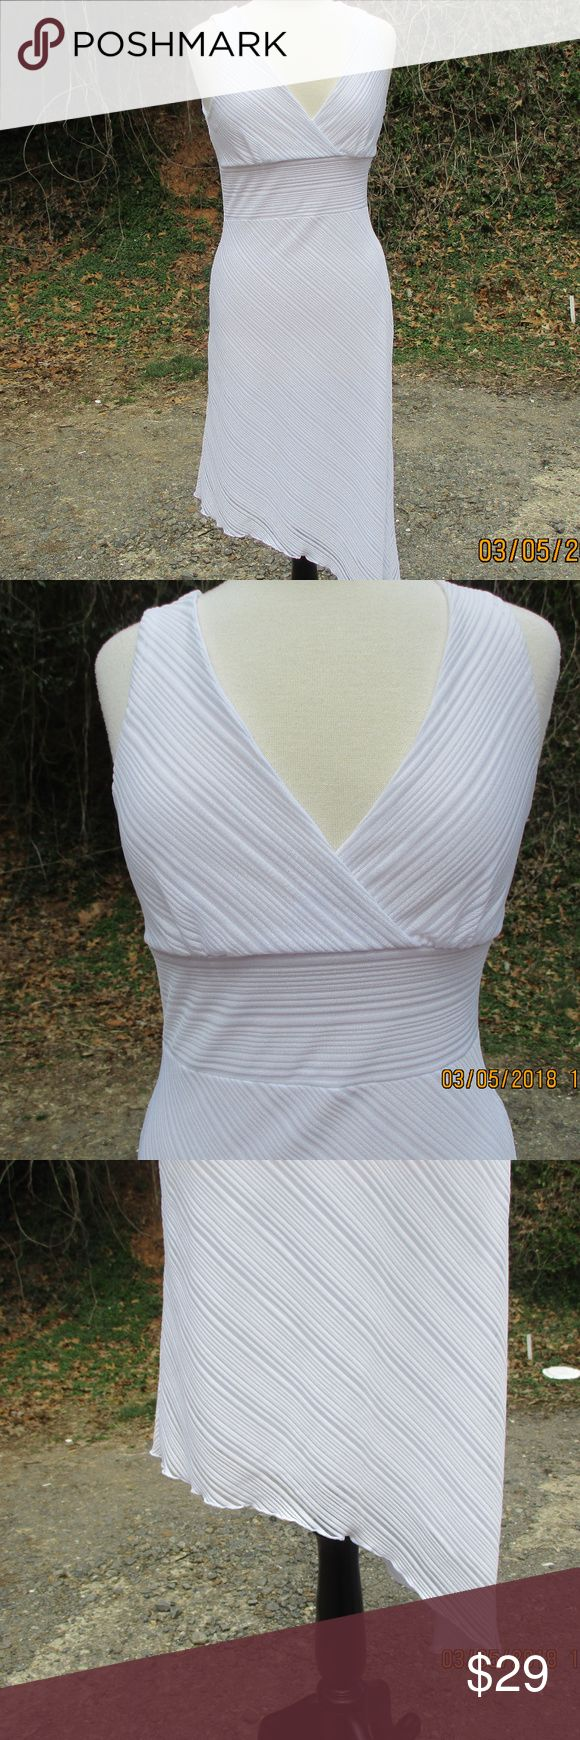 """Charlotte Russe White Stretchy Dress Party Career Charlotte Russe White Stretchy Dress Party Career Size Large Asymmetrical Hem Crossover Wide Waistband Sleeveless Fully Lined No zippers, buttons or pockets. 98% Polyester 4% Spandex Hand wash or dry clean Pit to Pit 17.5"""" Waist 15"""" Hips 18"""" Length 43""""  ALL MEASUREMENTS ARE TAKEN WITH ITEM LAID FLAT,  UNSTRETCHED, AND ARE APPROXIMATES Charlotte Russe Dresses"""